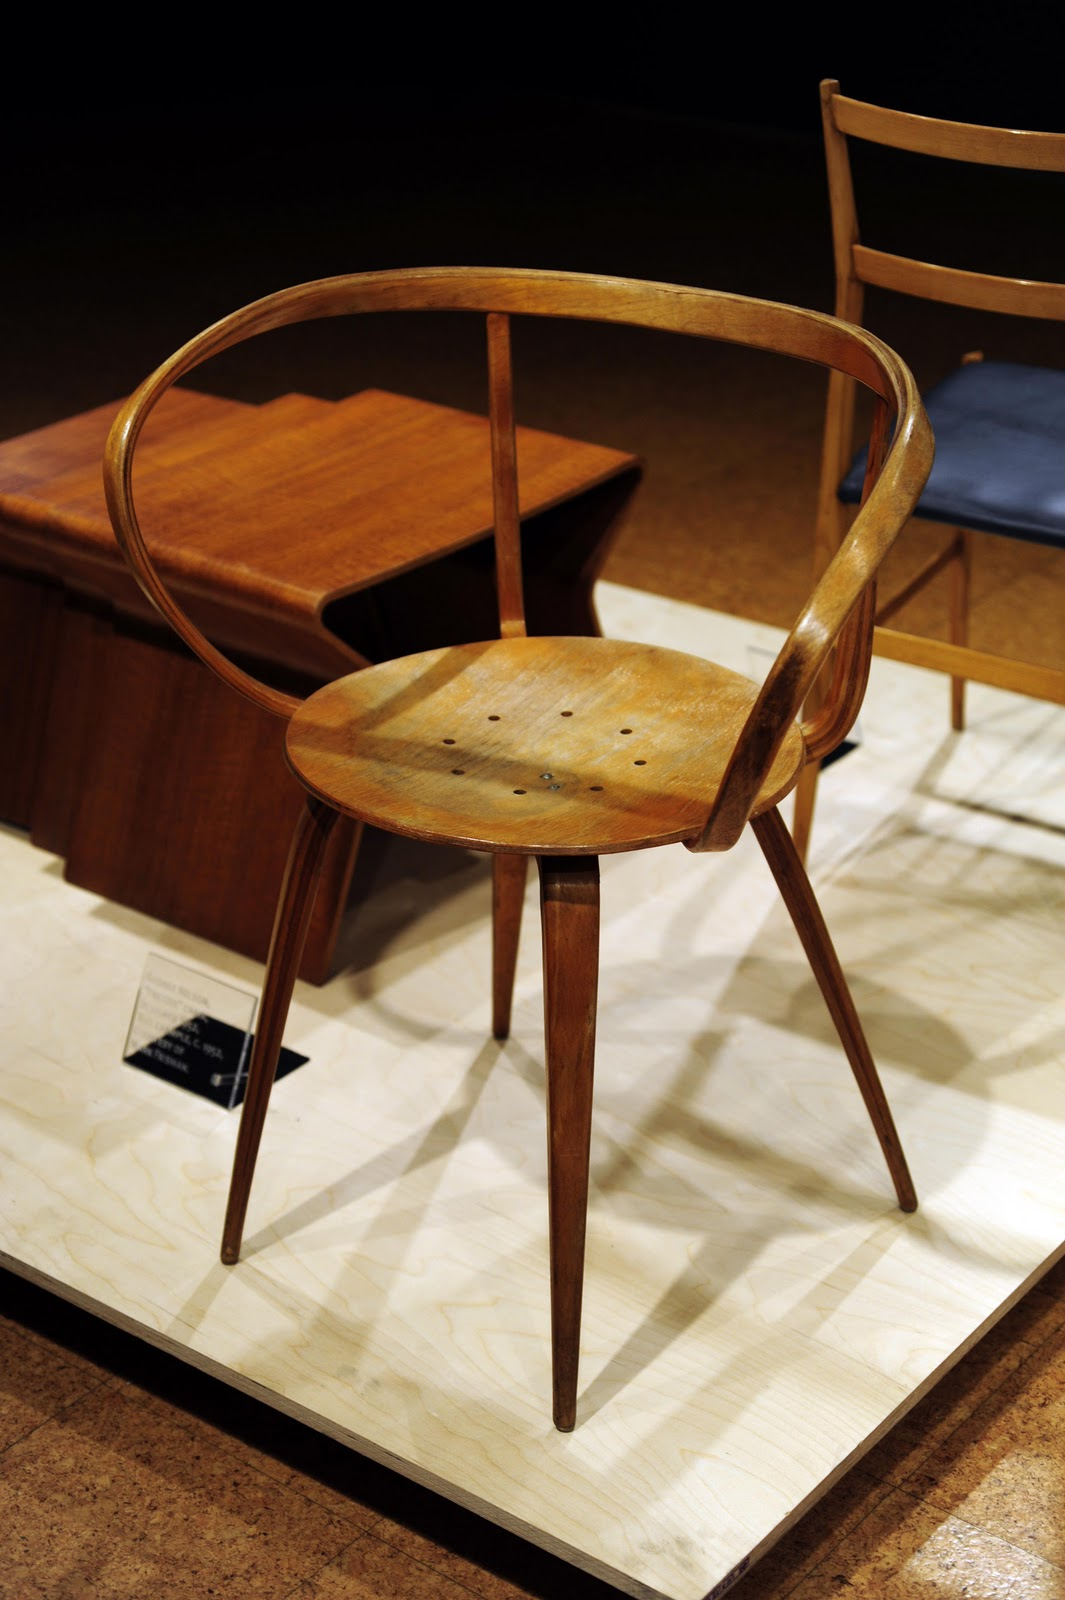 Pretzel Chair Love At First Sight George Nelsons Pretzel Chair